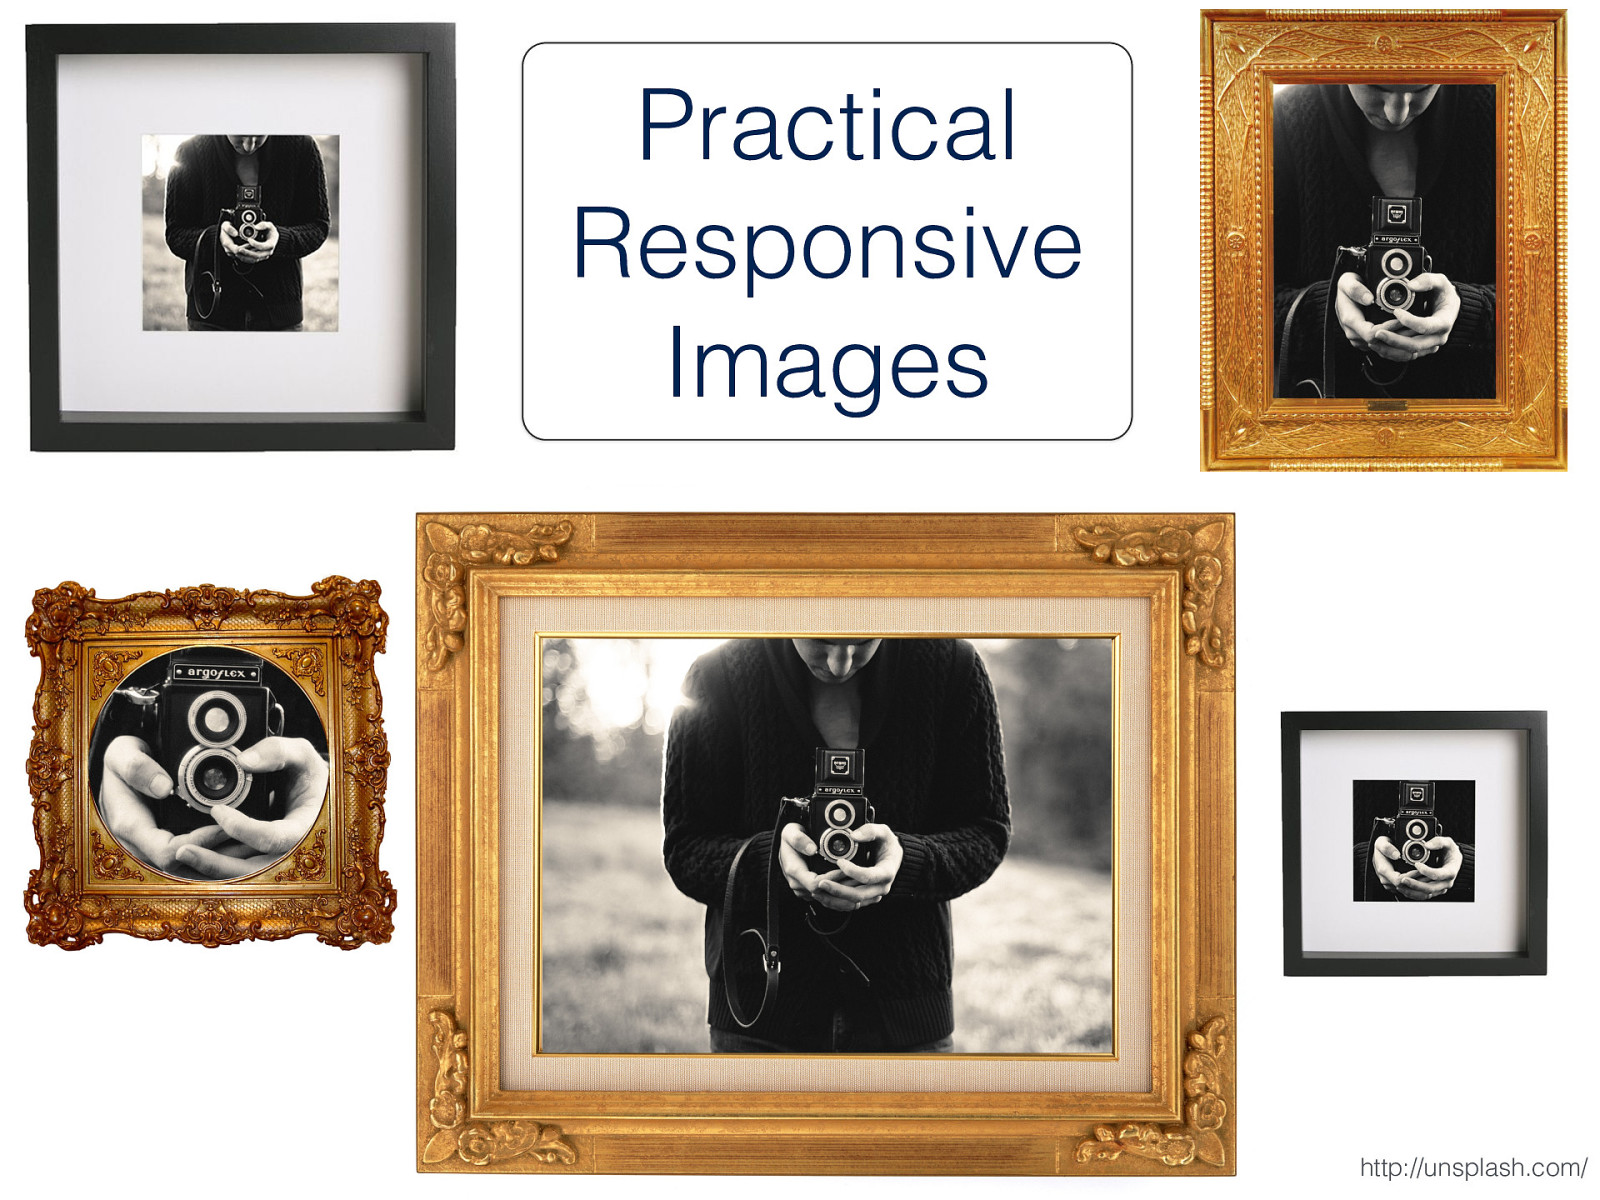 Practical Responsive Images